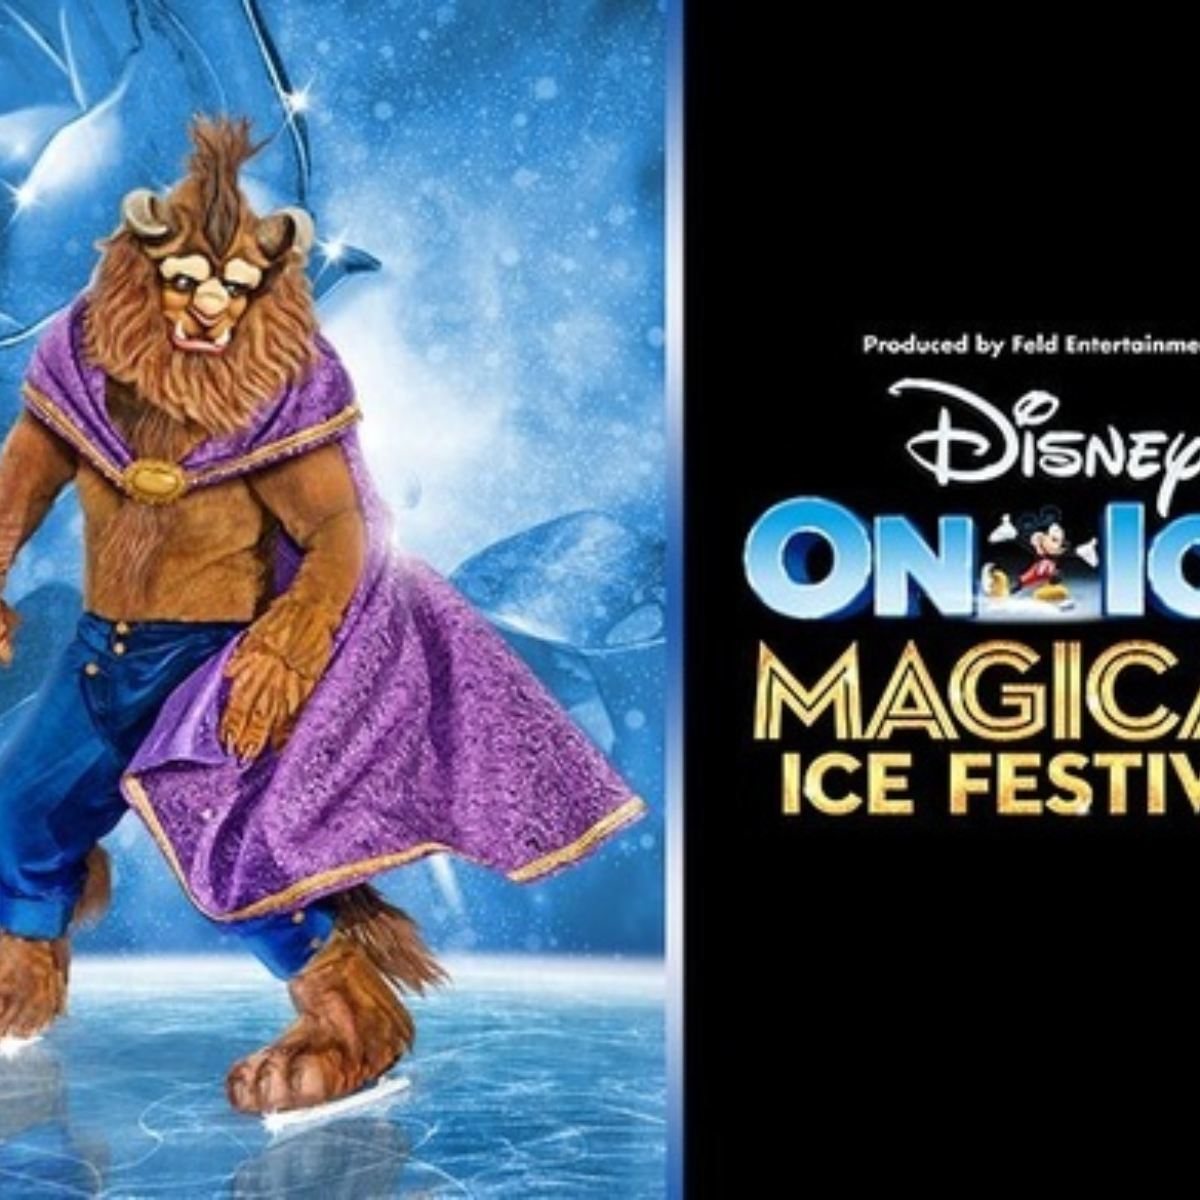 Disney On Ice presents Magical Ice Festival (Wembley) Images